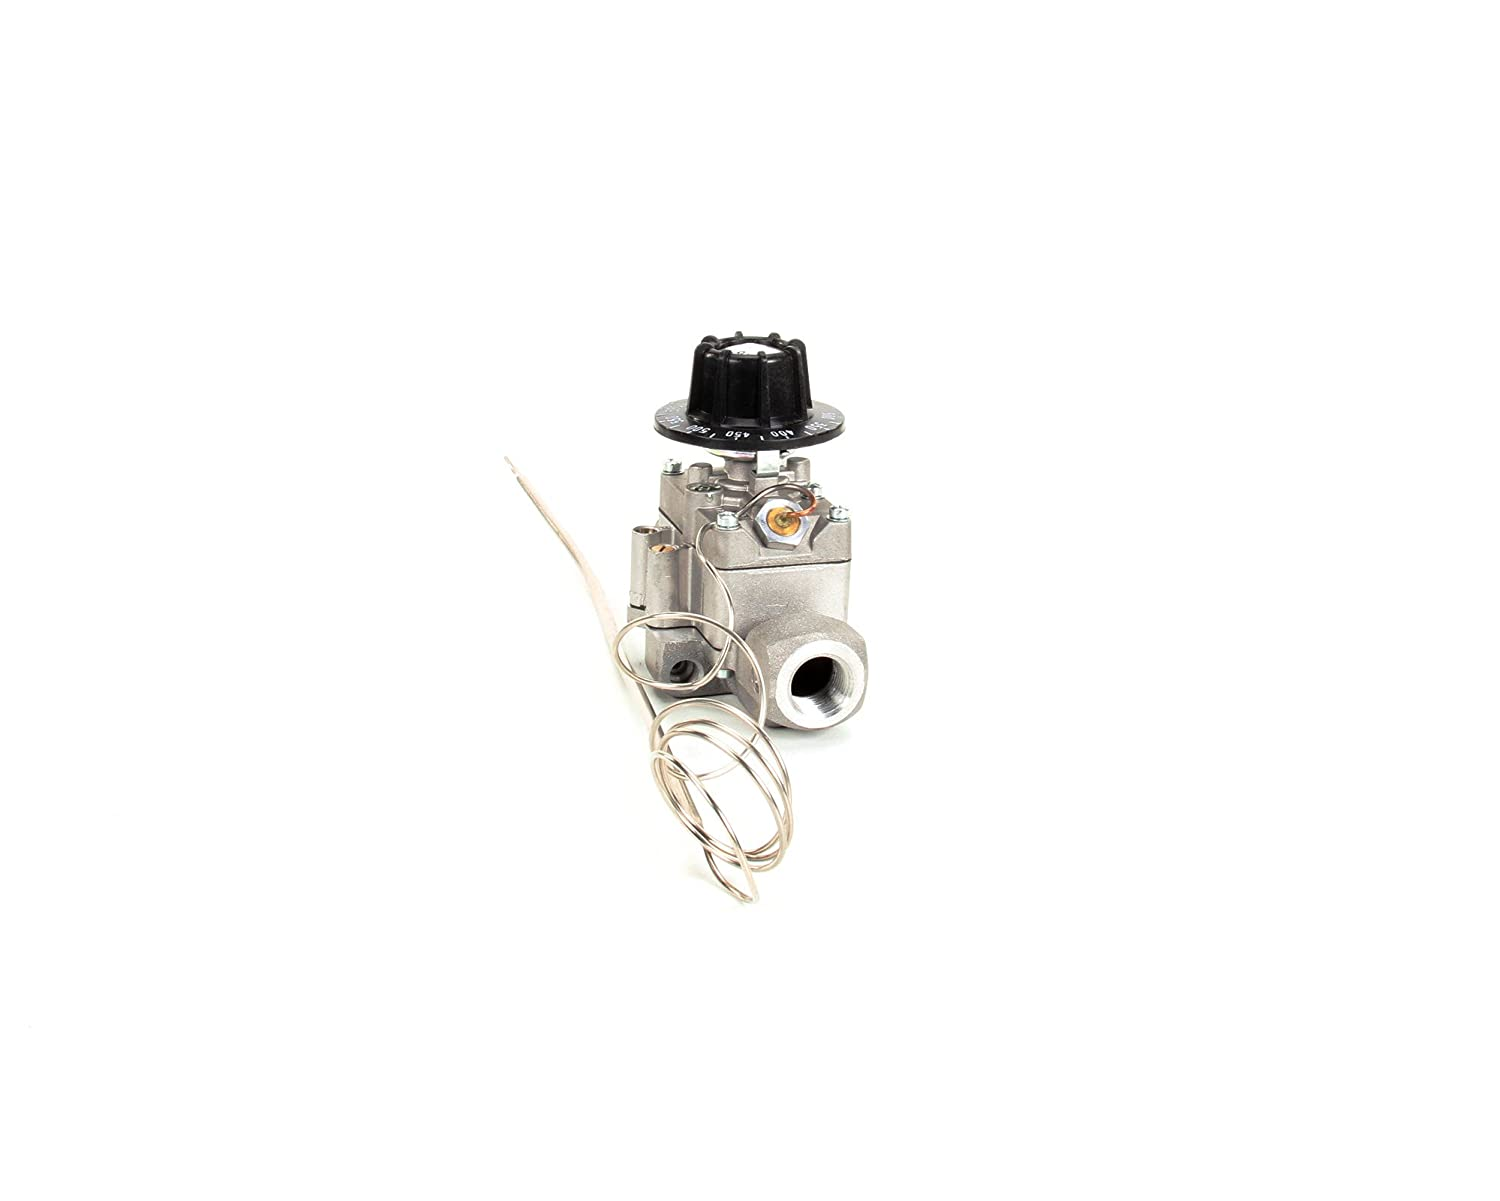 Blodgett 11529 Thermostat and Nipple